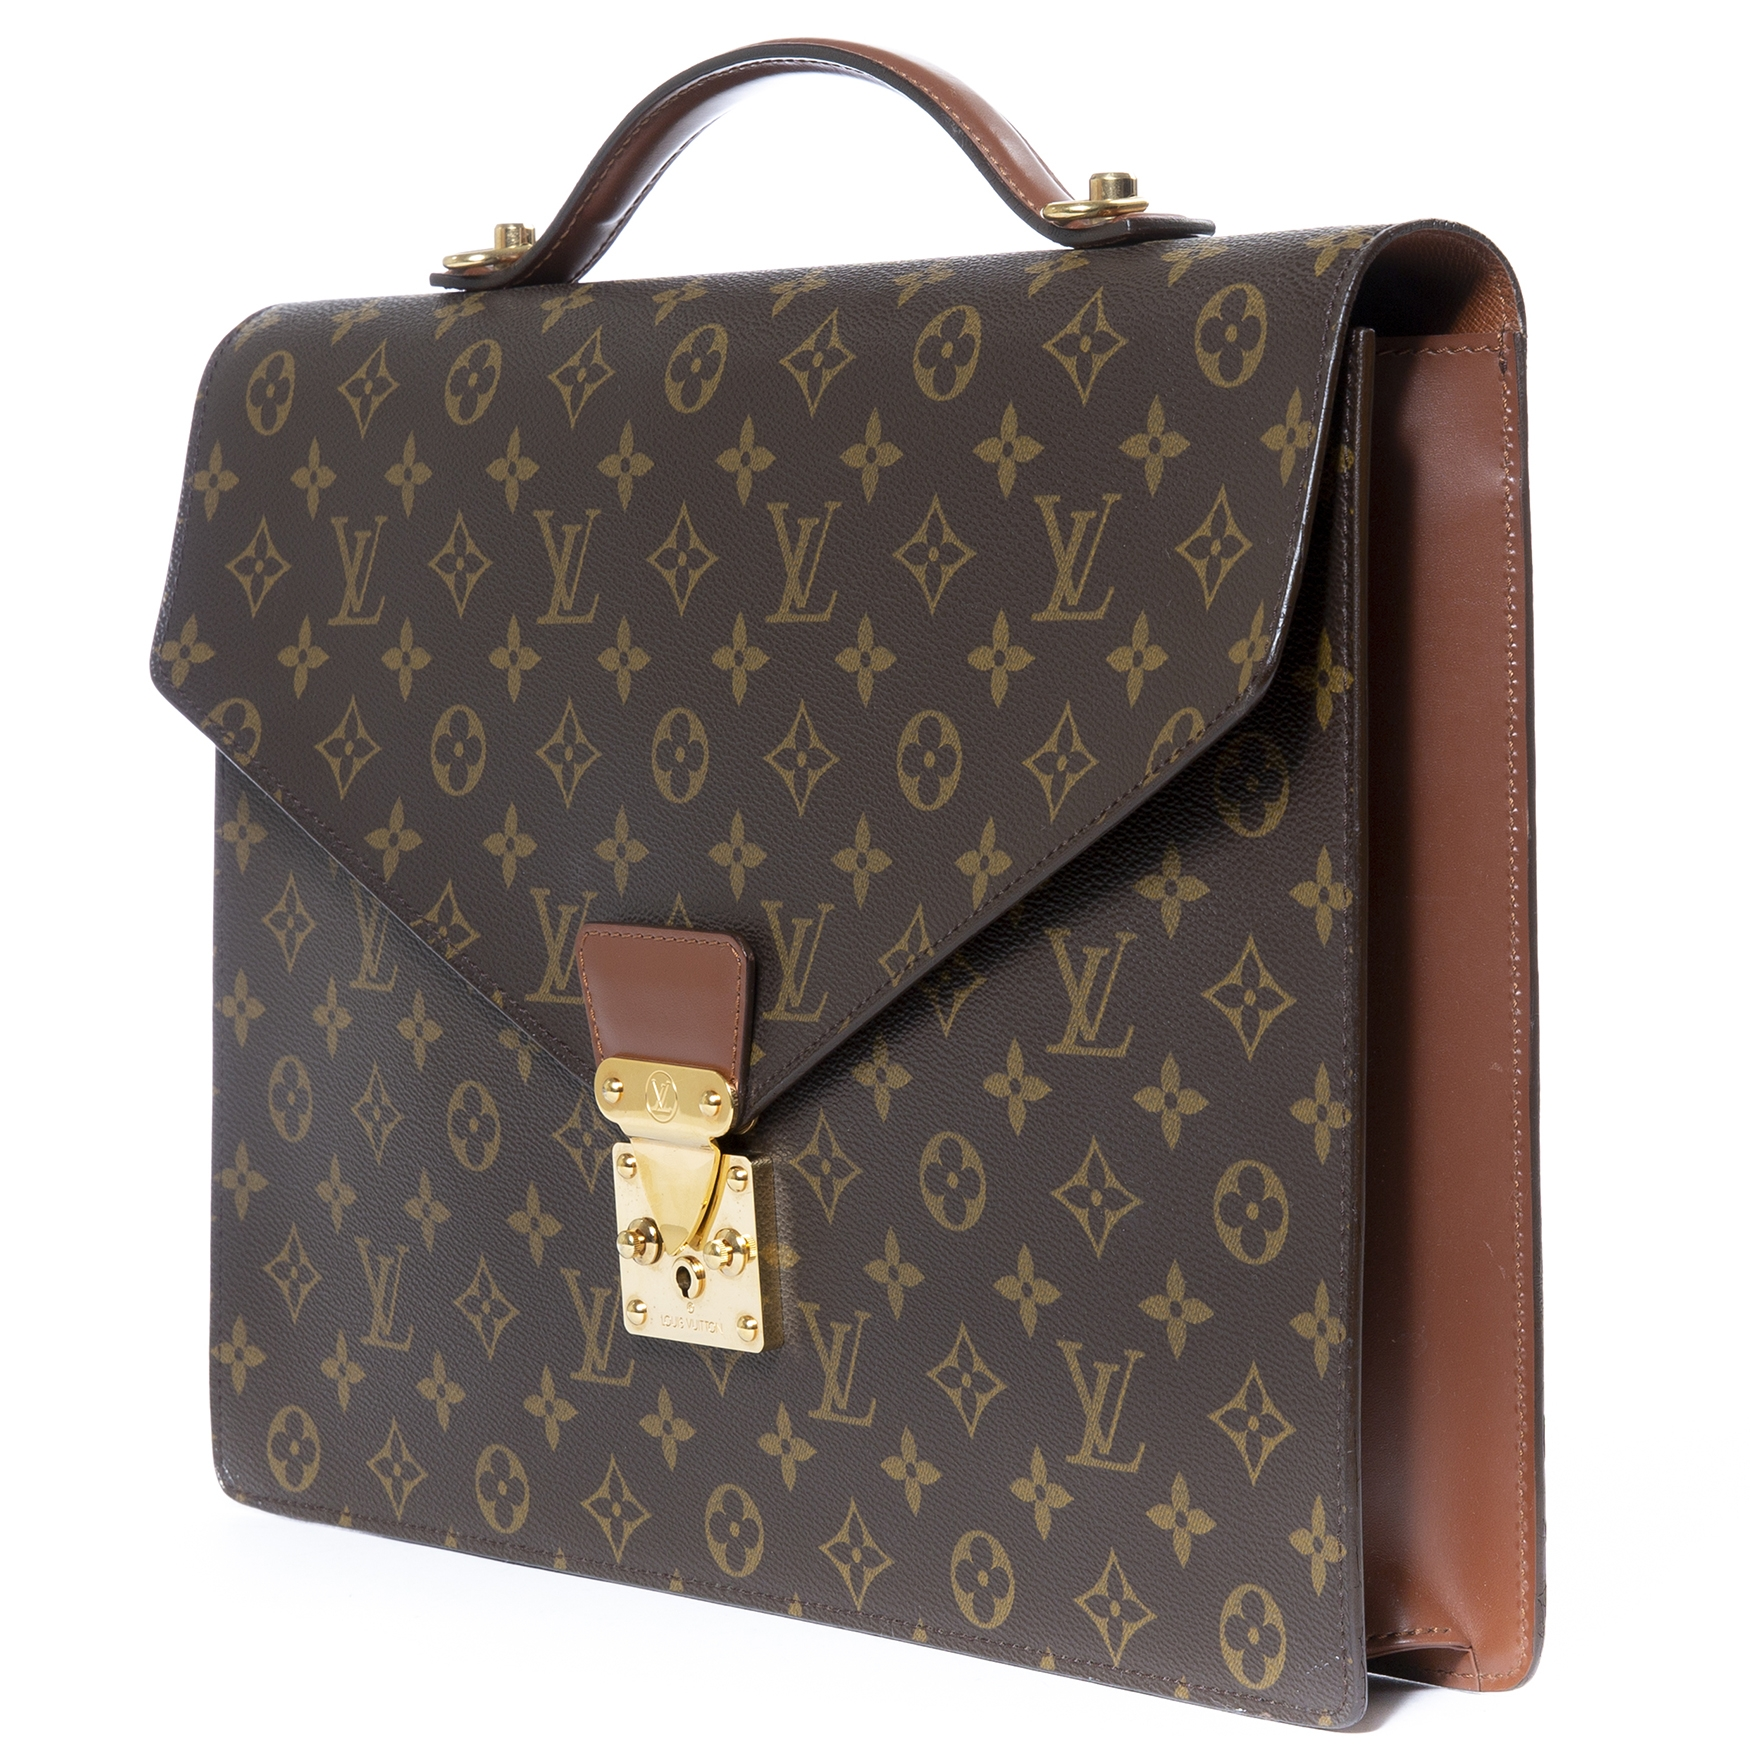 f077f963869fe ... buy authentic louis vuitton monogram conseiller briefcase at labellov  vintage webshop for the lowest price